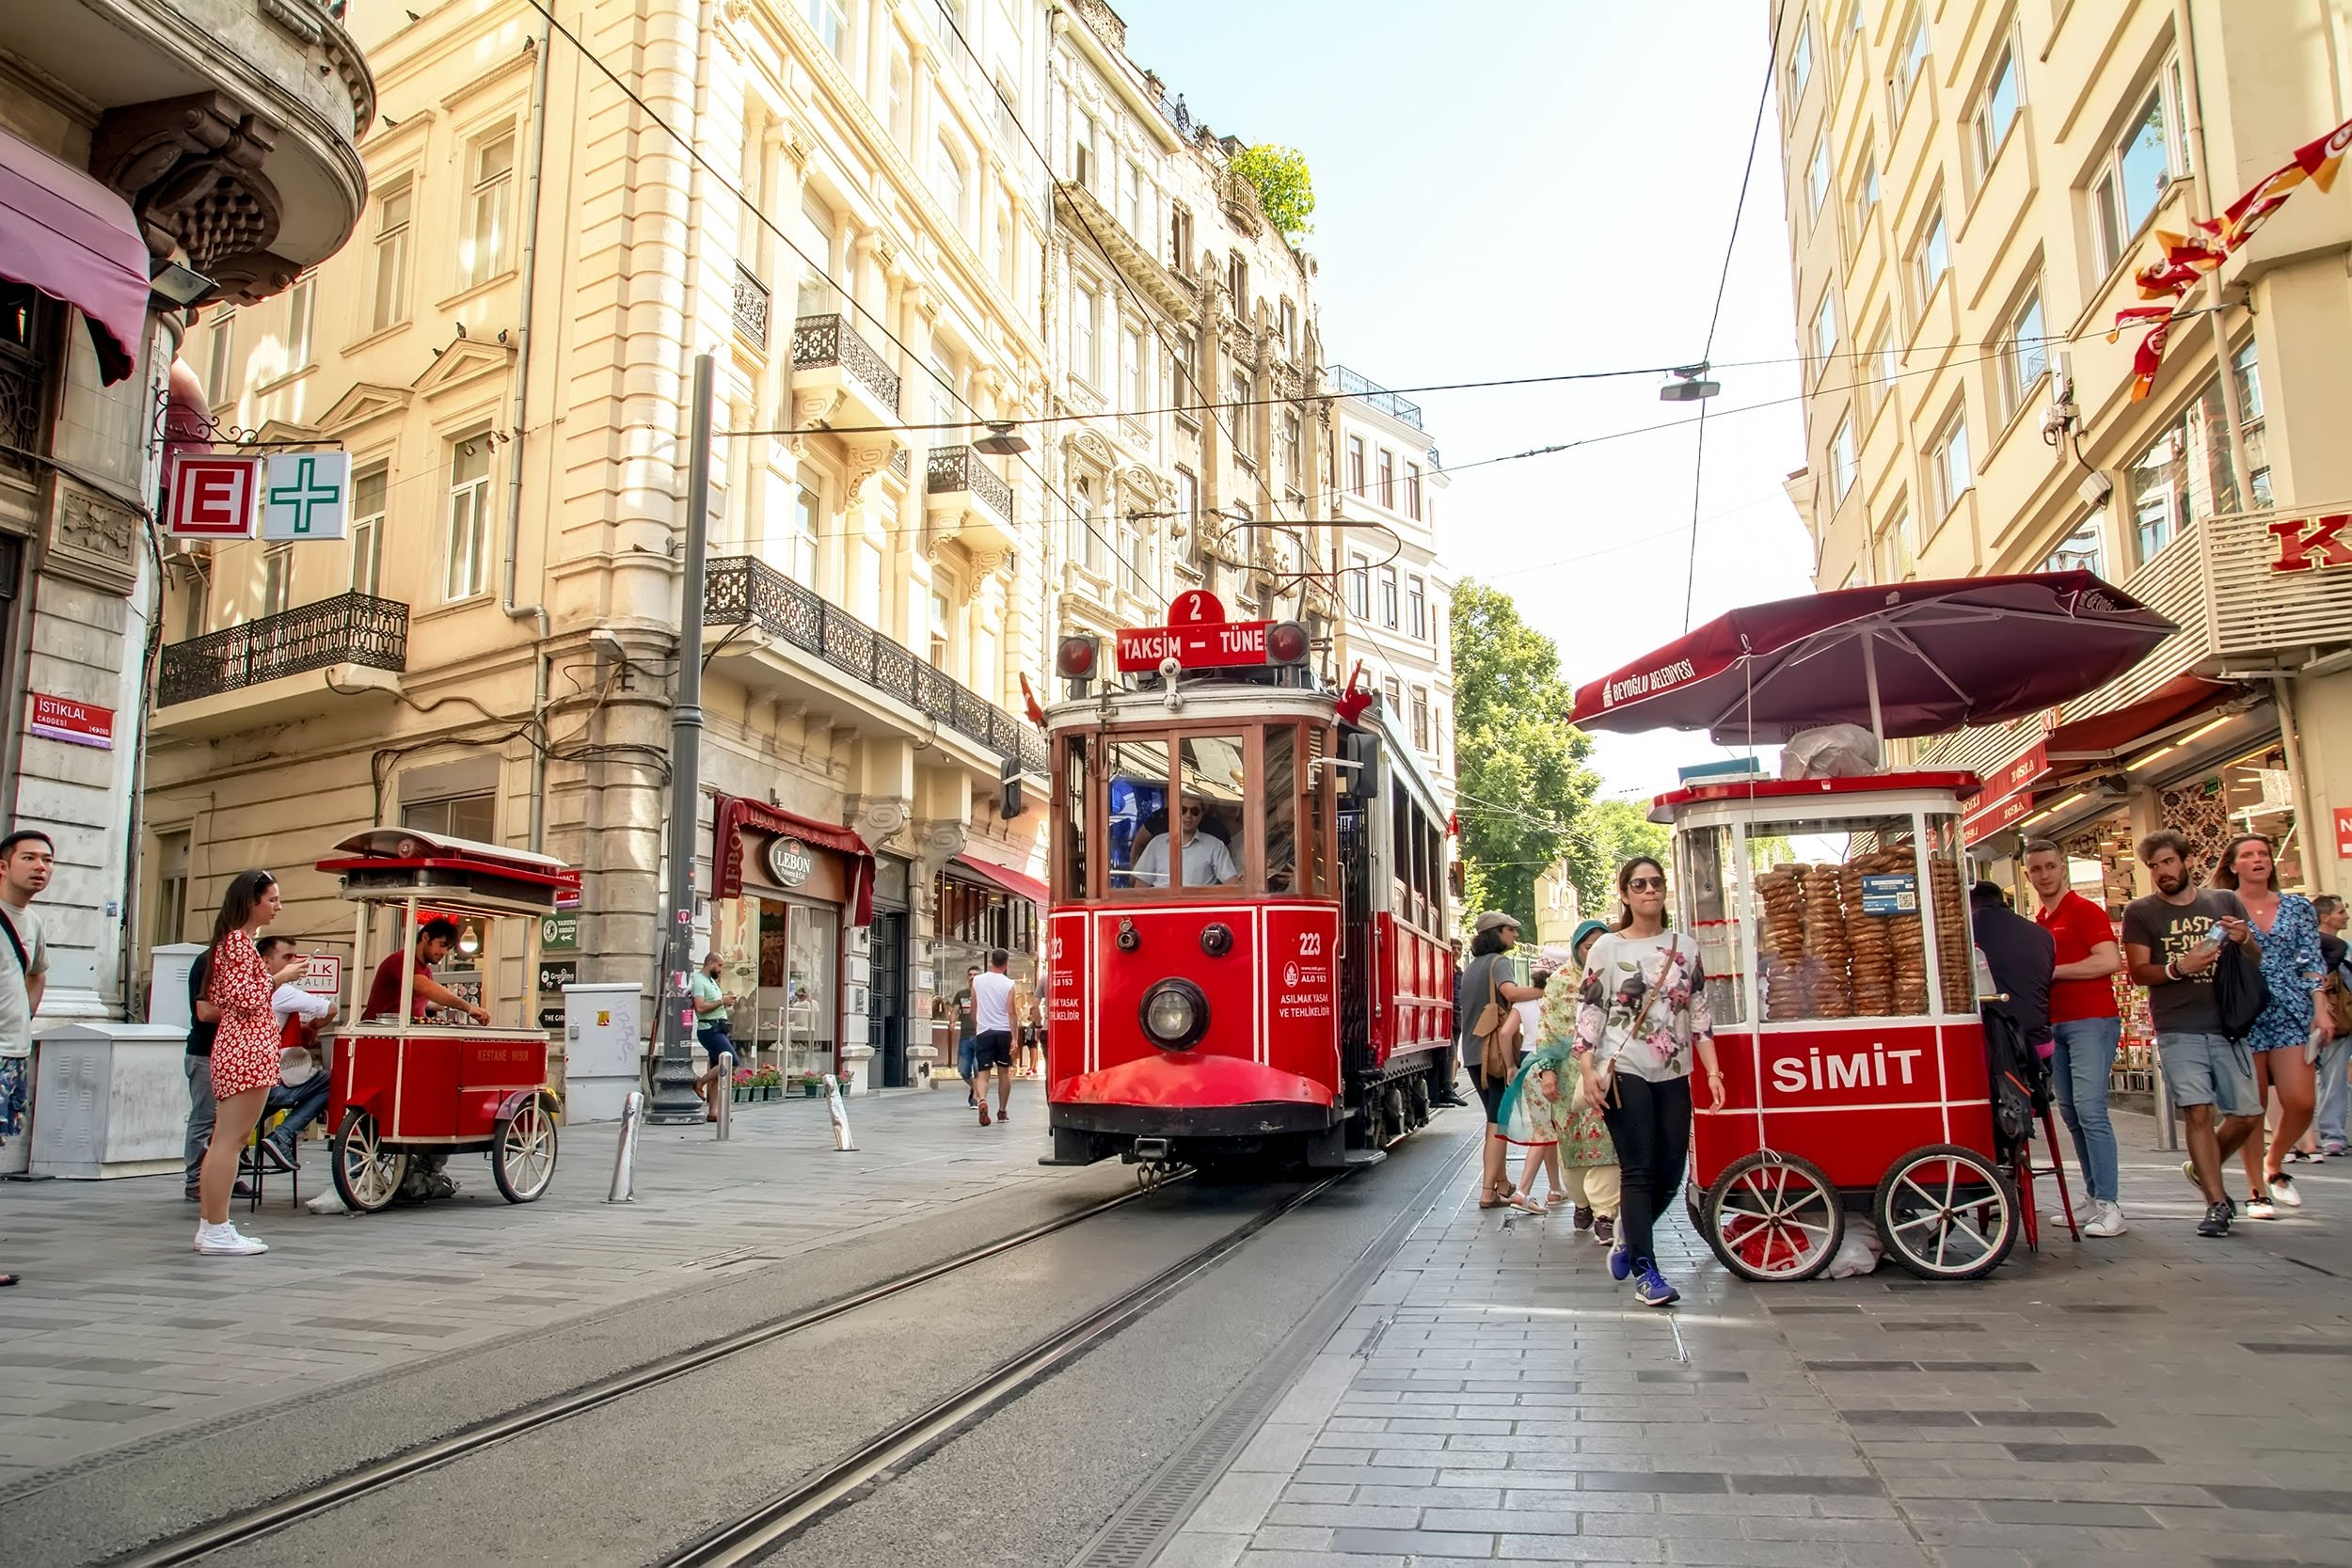 The nostalgic red tram of Taksim on the Istiklal Avenue in the Beyoğlu district,Istanbul, Turkey. (Shutterstock Photo)